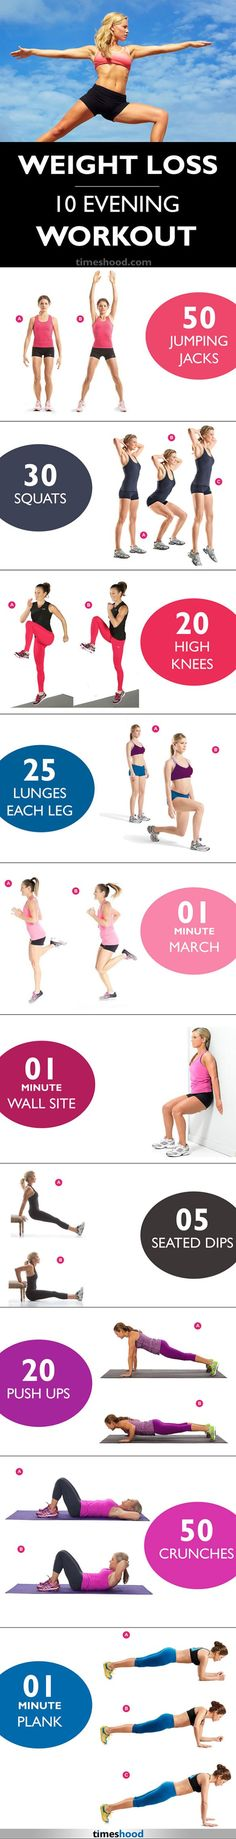 10 Effective Workout for Weight Loss. Fat Burn Evening Workout | Posted By: CustomWeightLossProgram.com